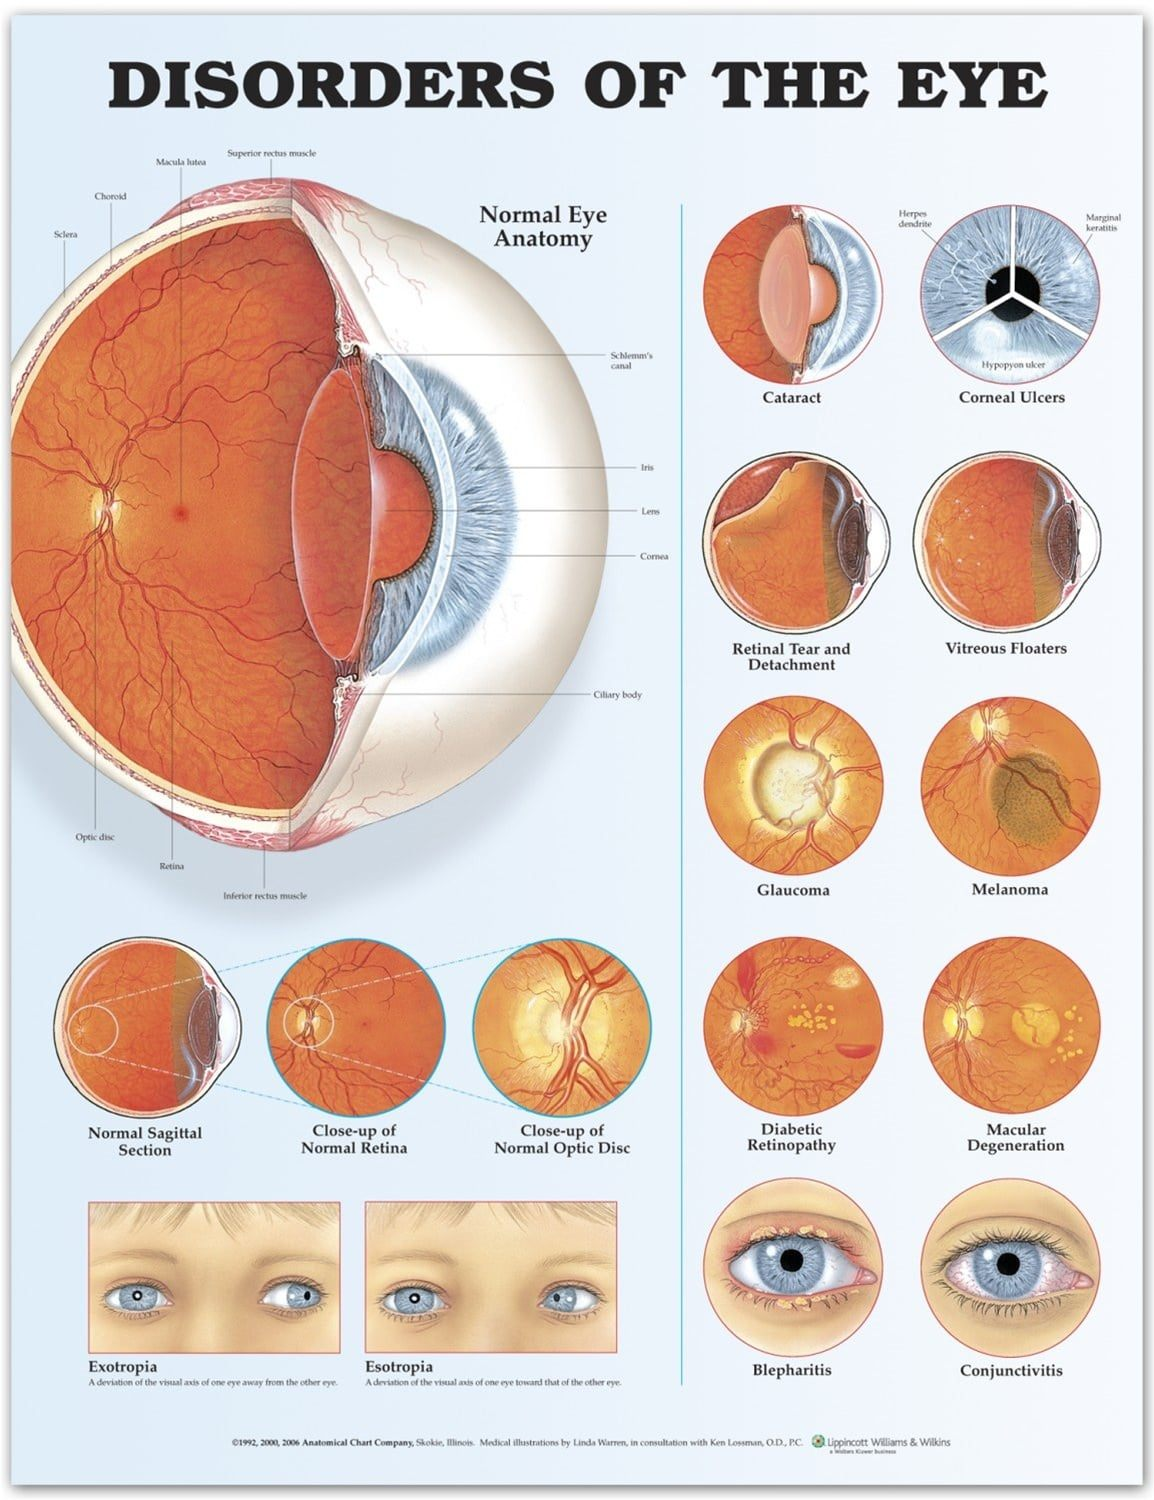 Disorders Of The Eye Infographic